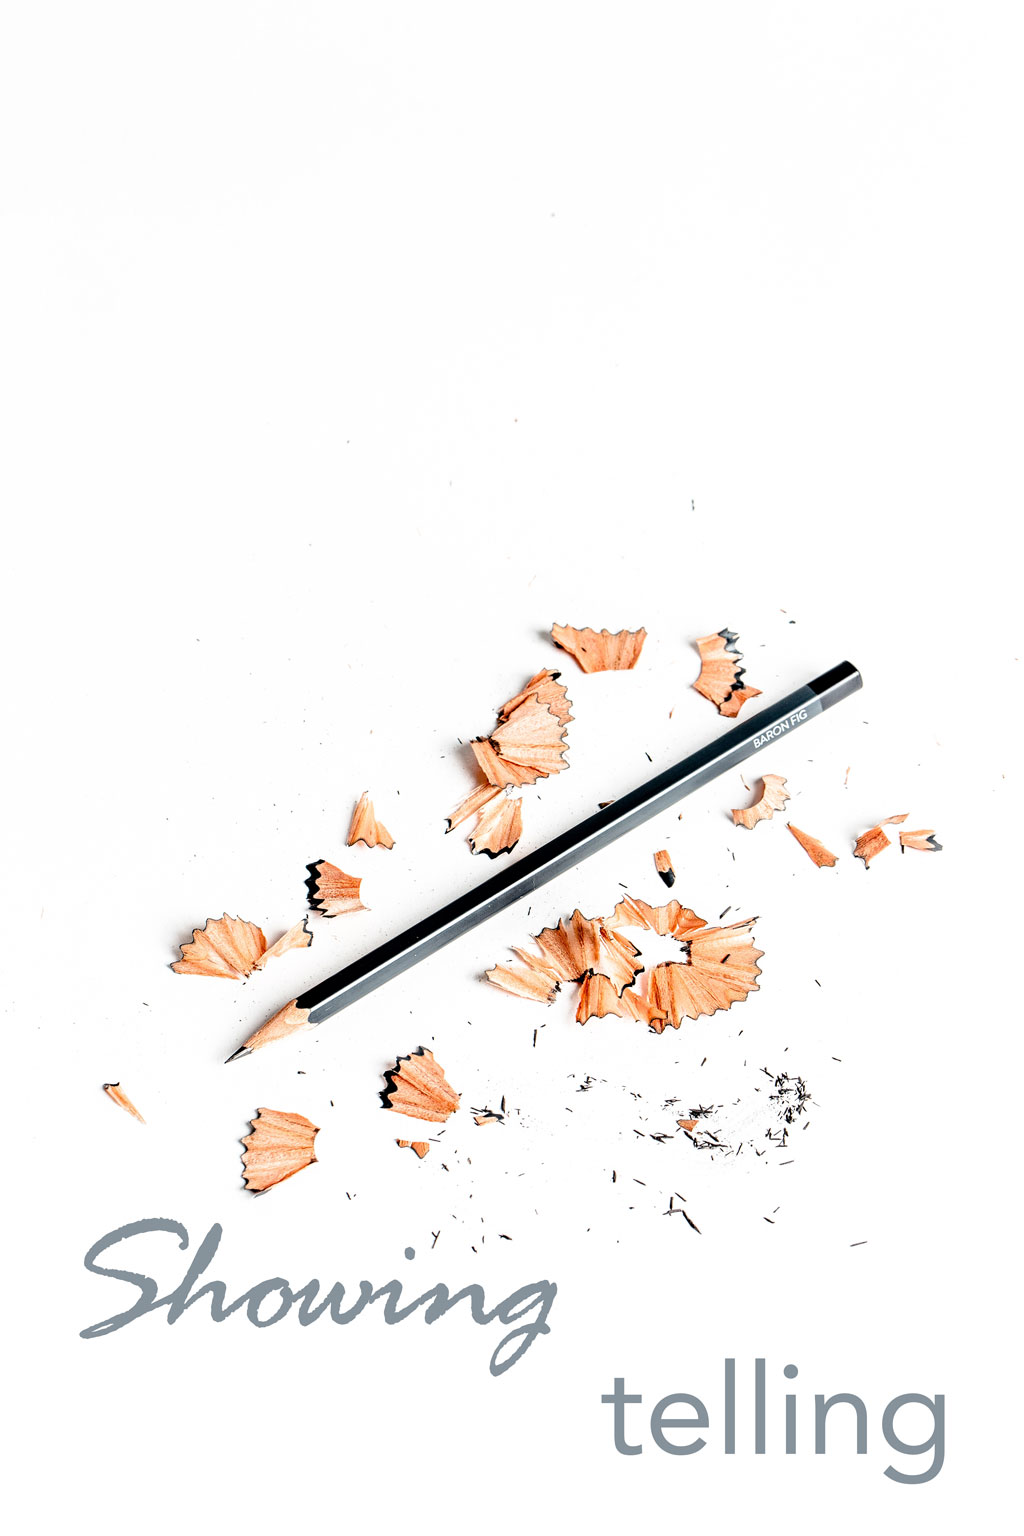 sharpened pencil lying amidst pencil shavings and text saying 'showing' and 'telling' on white background